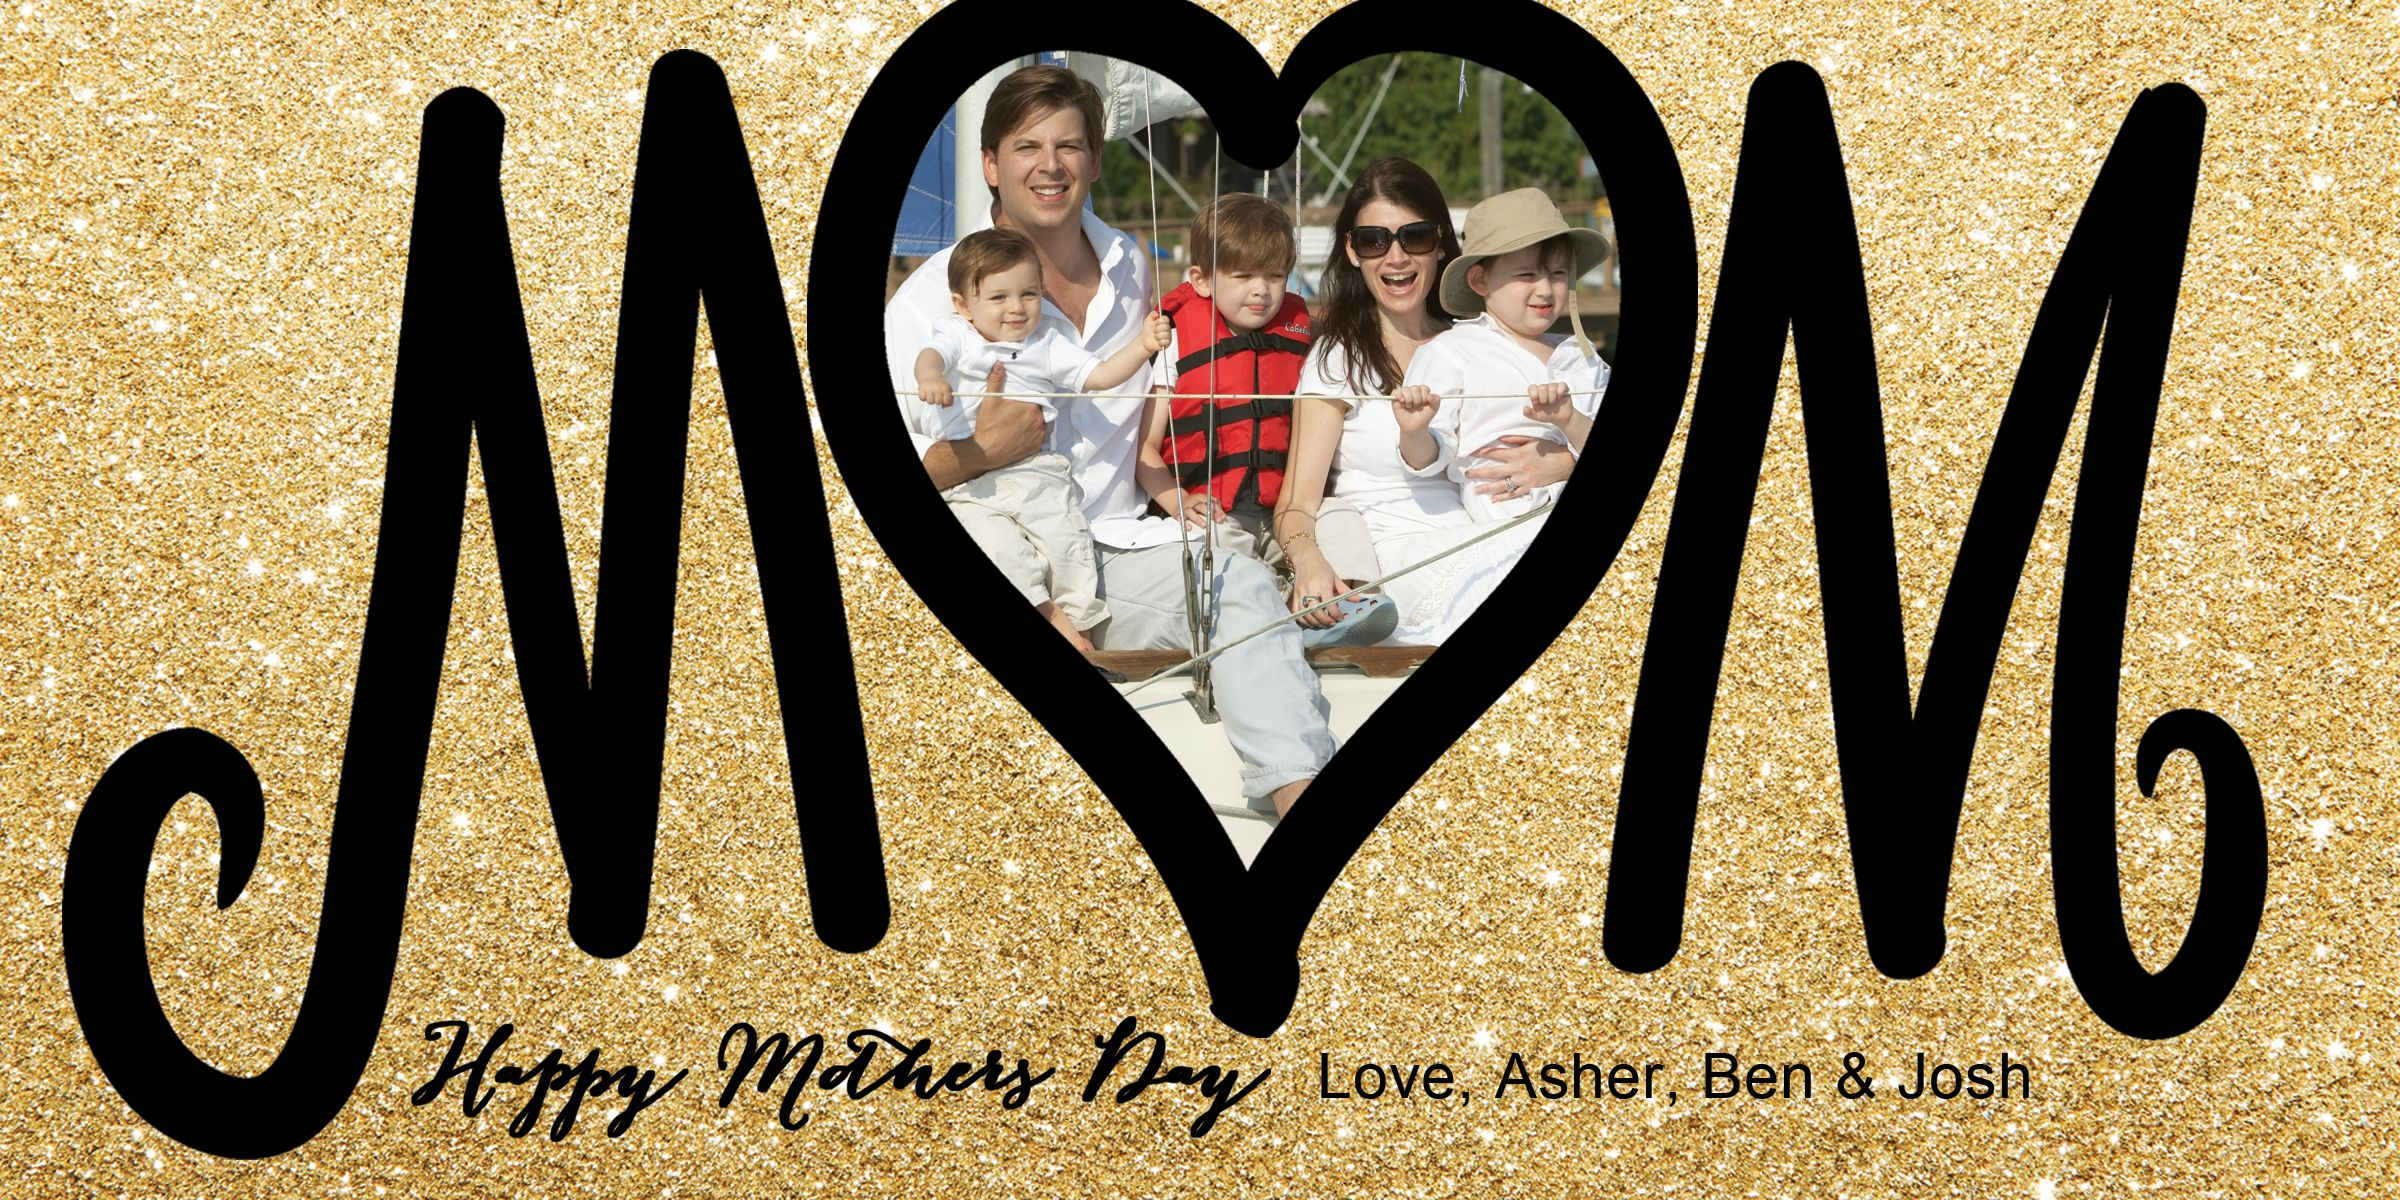 Personalized mothers day cards made at the kodak picture kiosk personalized mothers day cards made at the kodak picture kiosk kristyandbryce Gallery